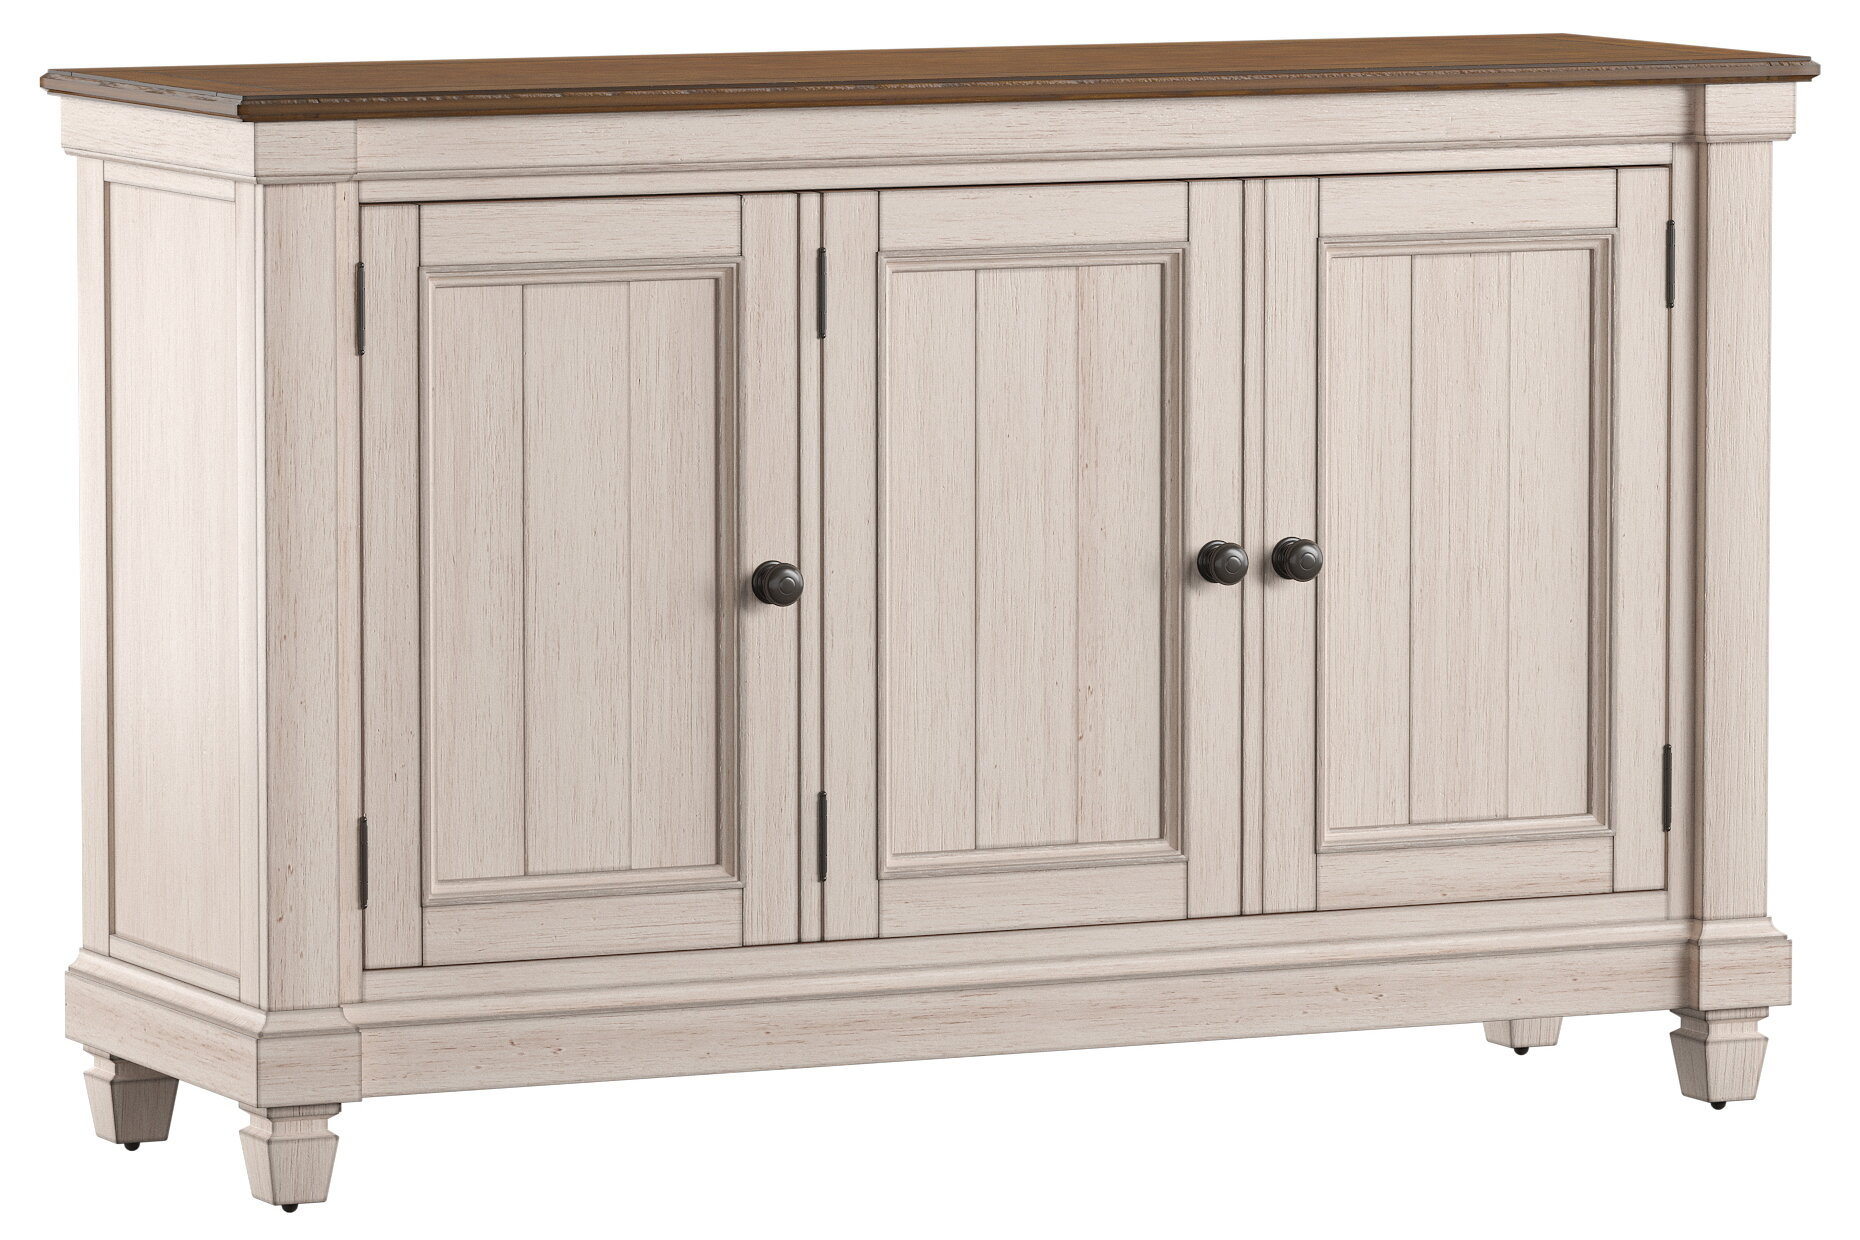 Narrow Credenza | Wayfair With Lainey Credenzas (View 24 of 30)